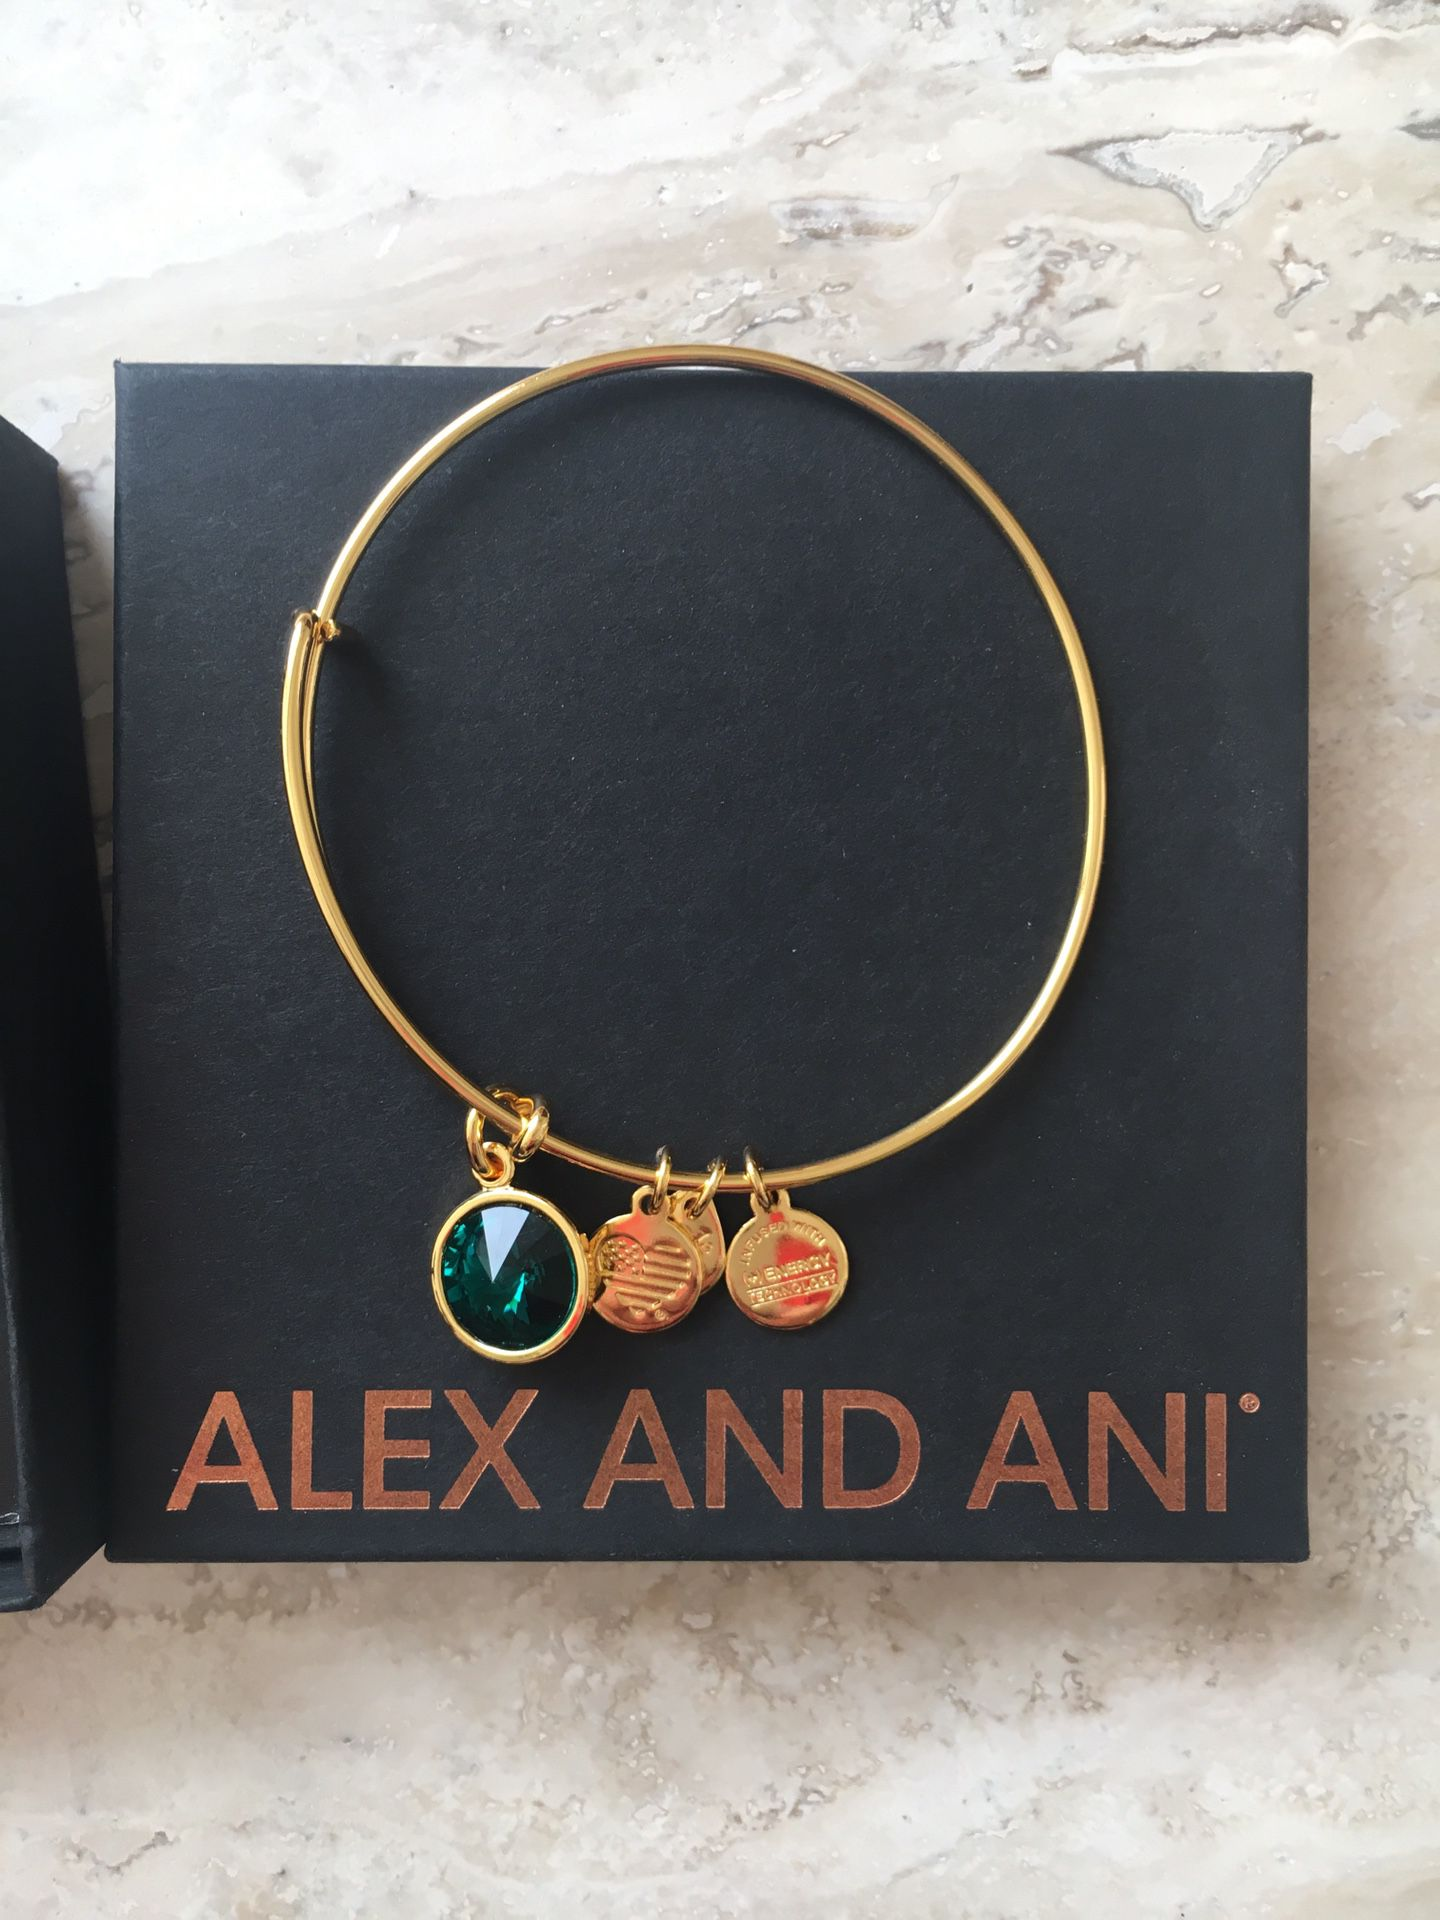 Alex and Ani birthstone bracelet, in original box and bag with bag